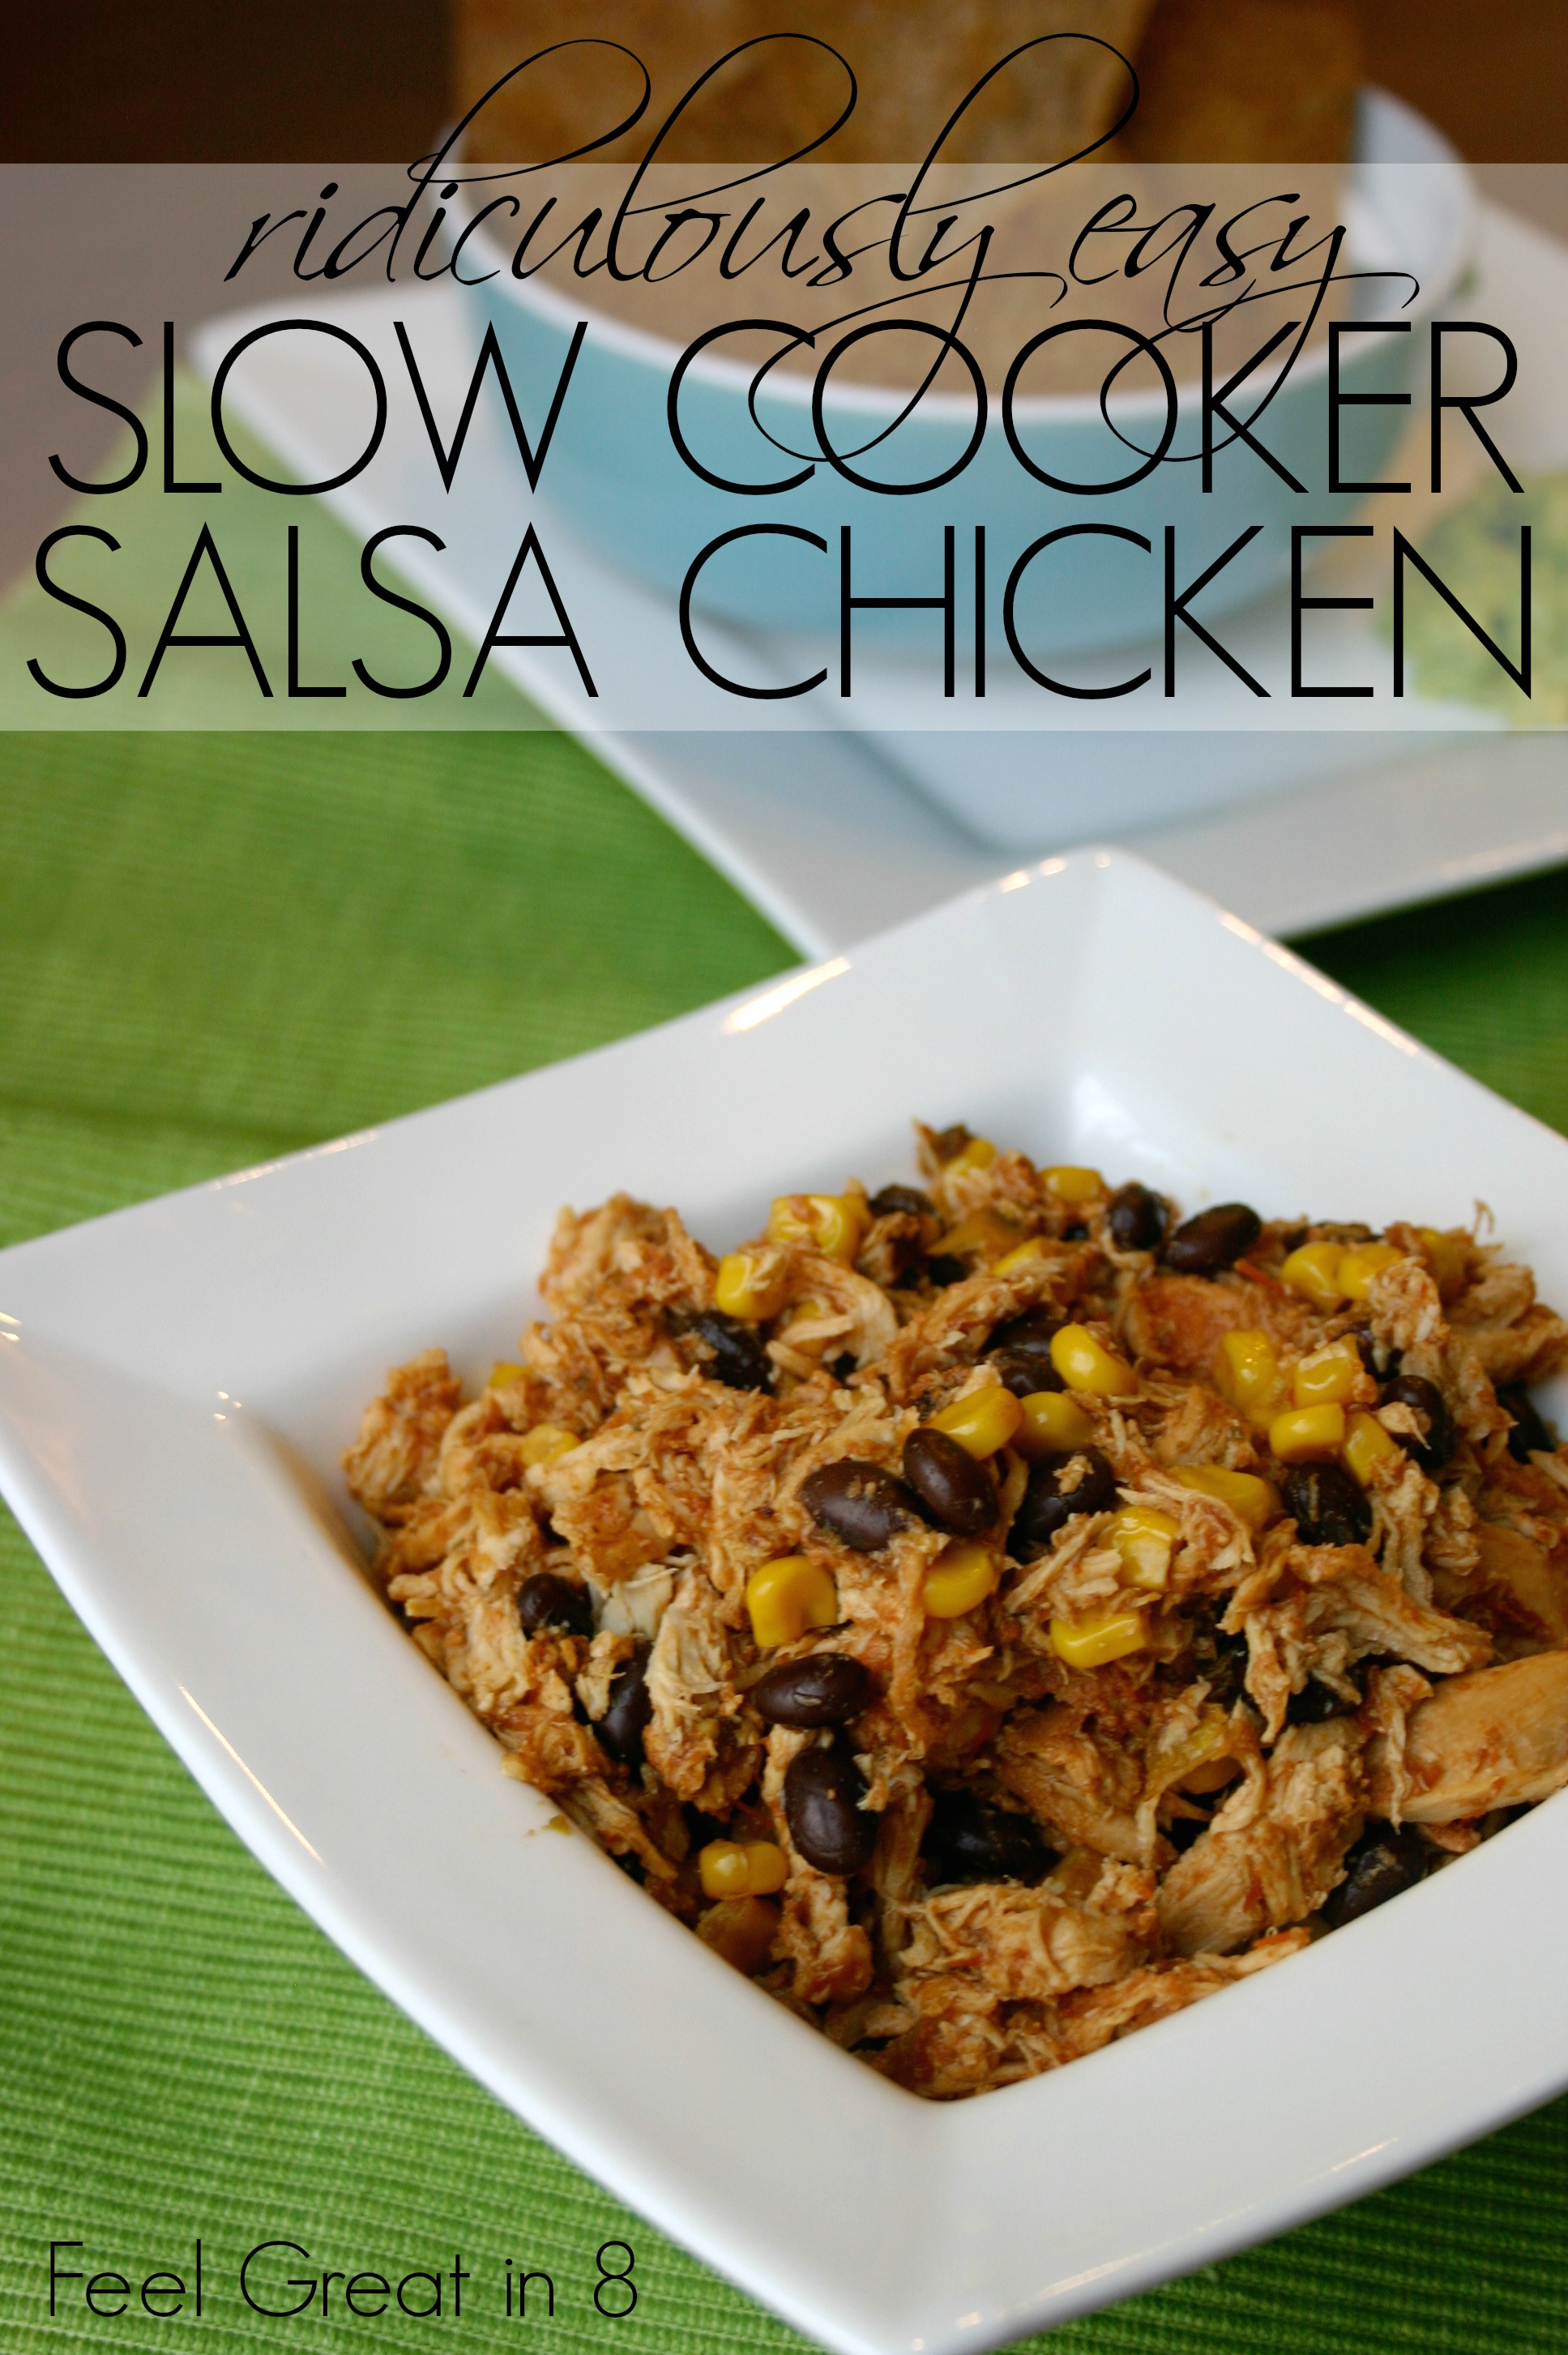 Ridiculously easy is really the only way to describe this chicken recipe. Open a few things, dump in slow cooker (aka CrockPot), let cook for 4-10 hours, and dinner is ready! #chicken #dinner #healthy #easy #slowcooker